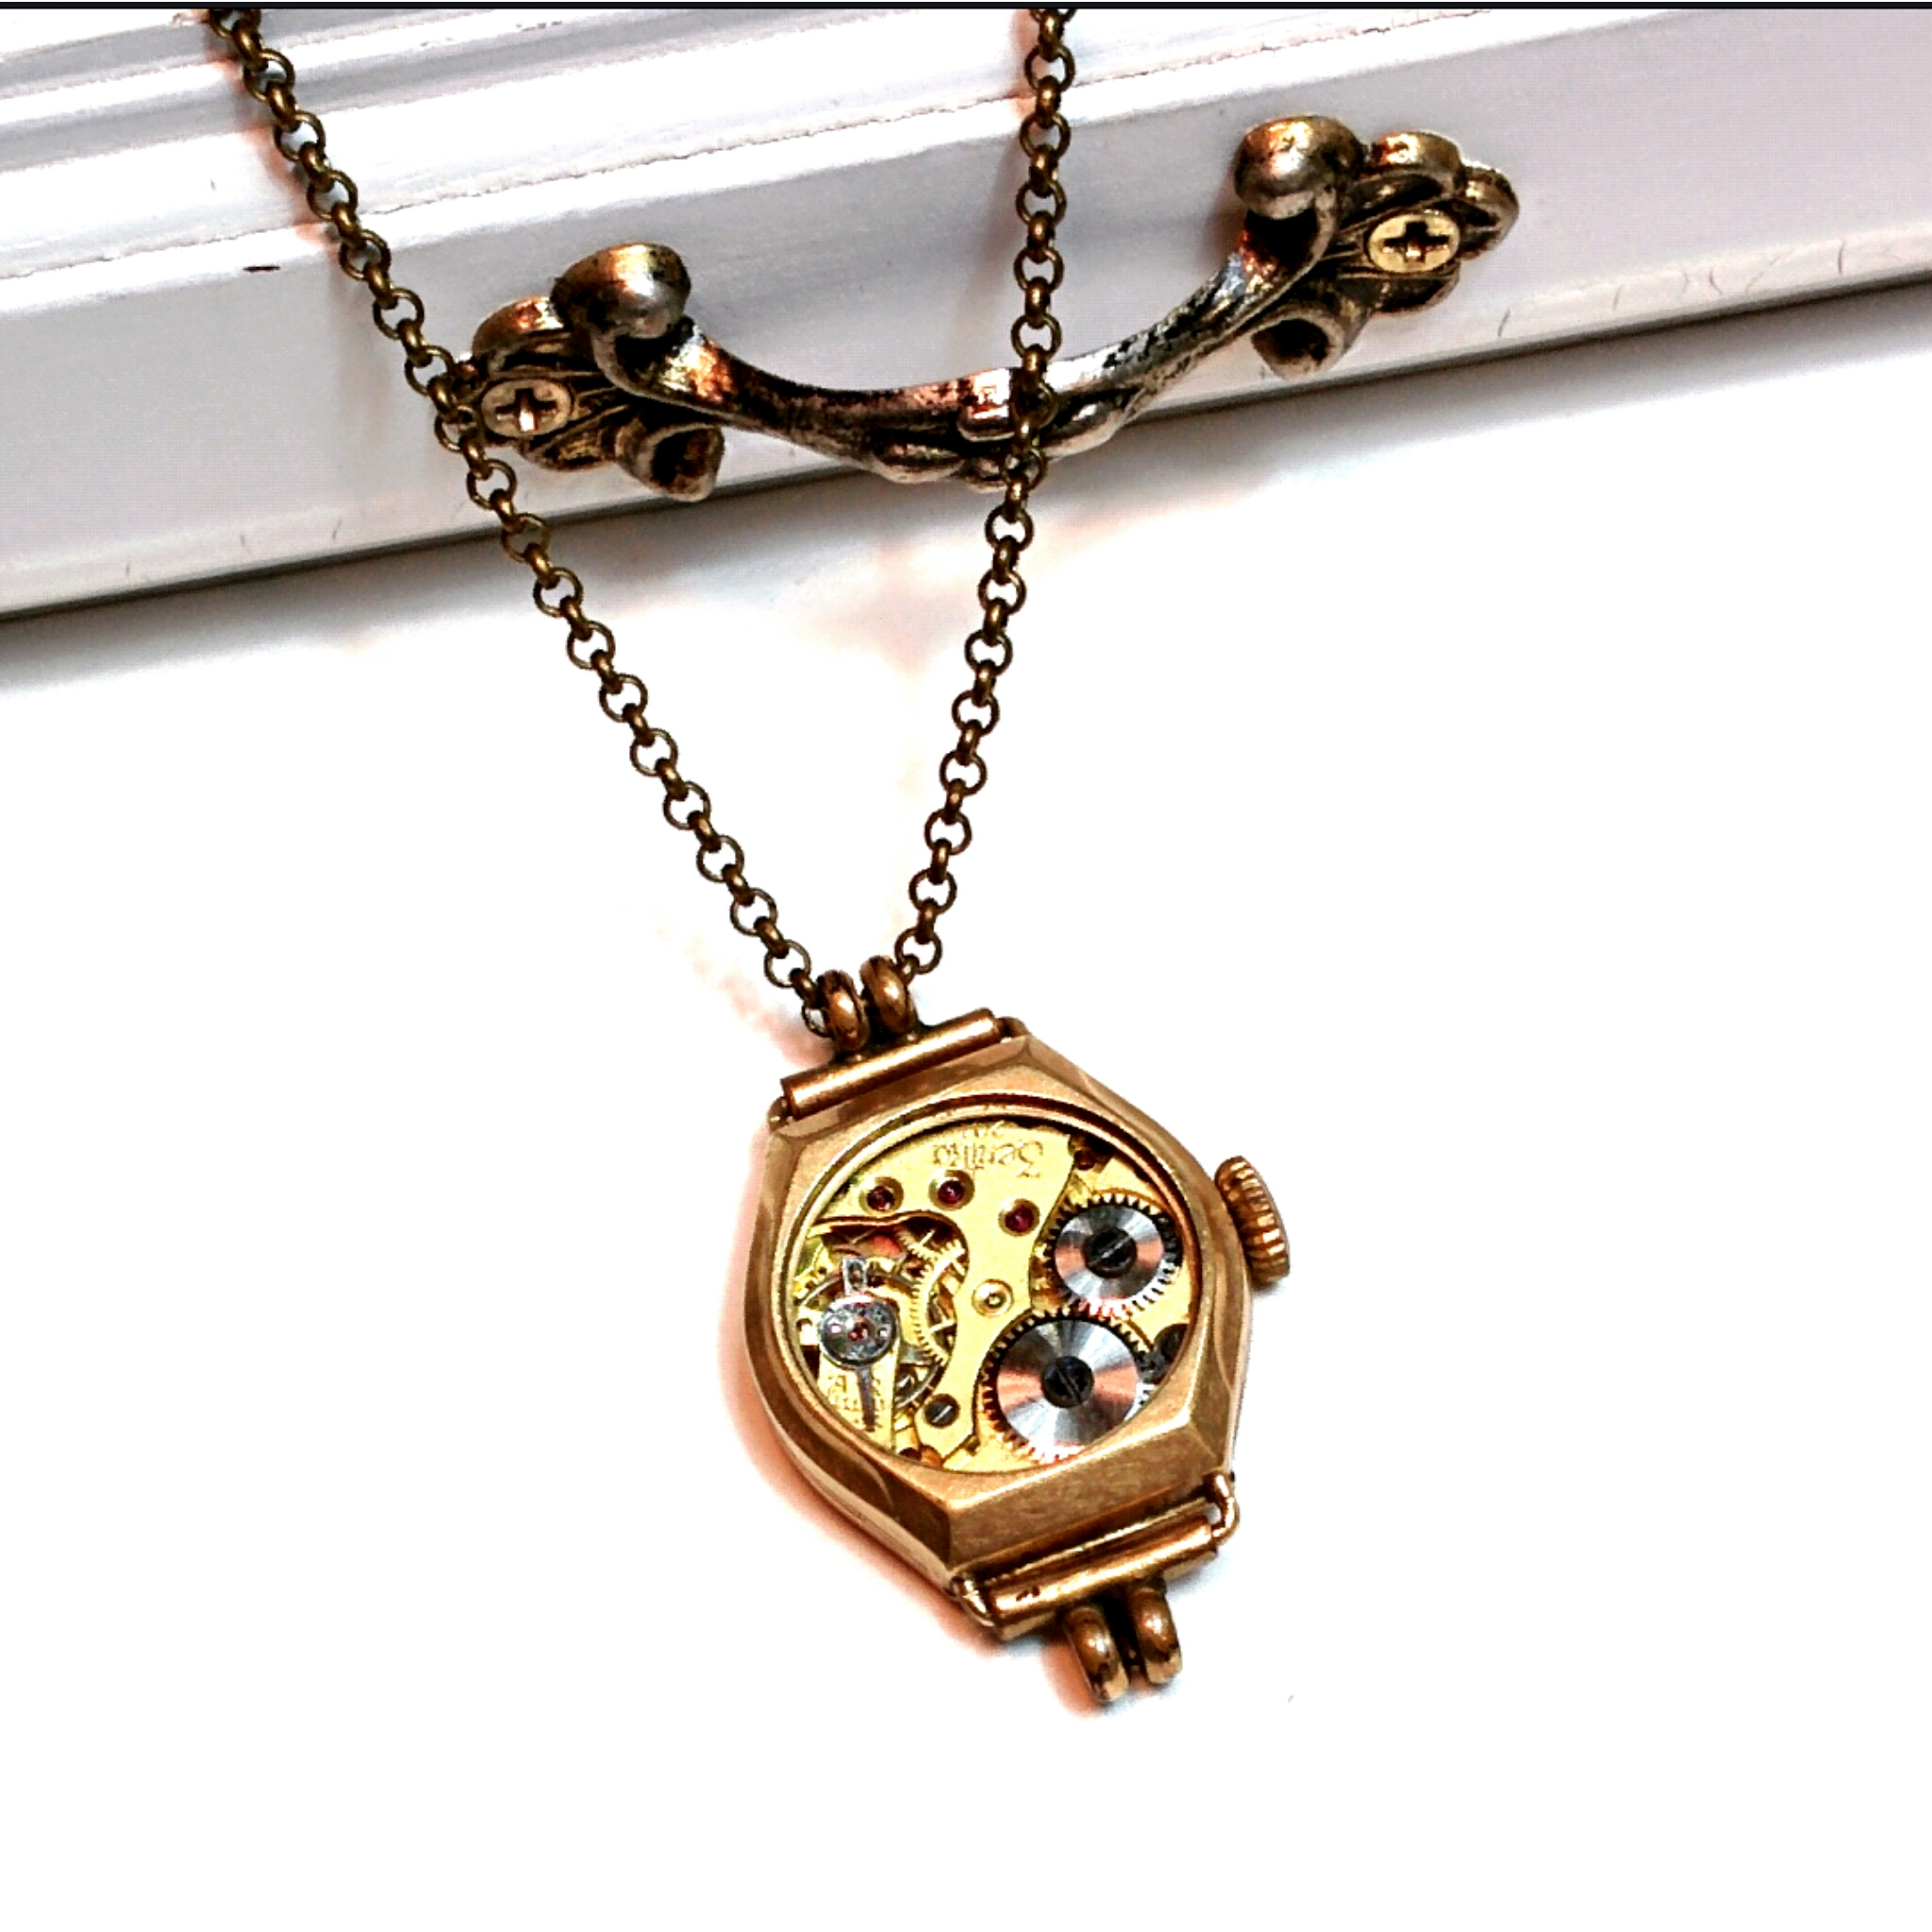 Gold filled vintage watch case and movement pendant